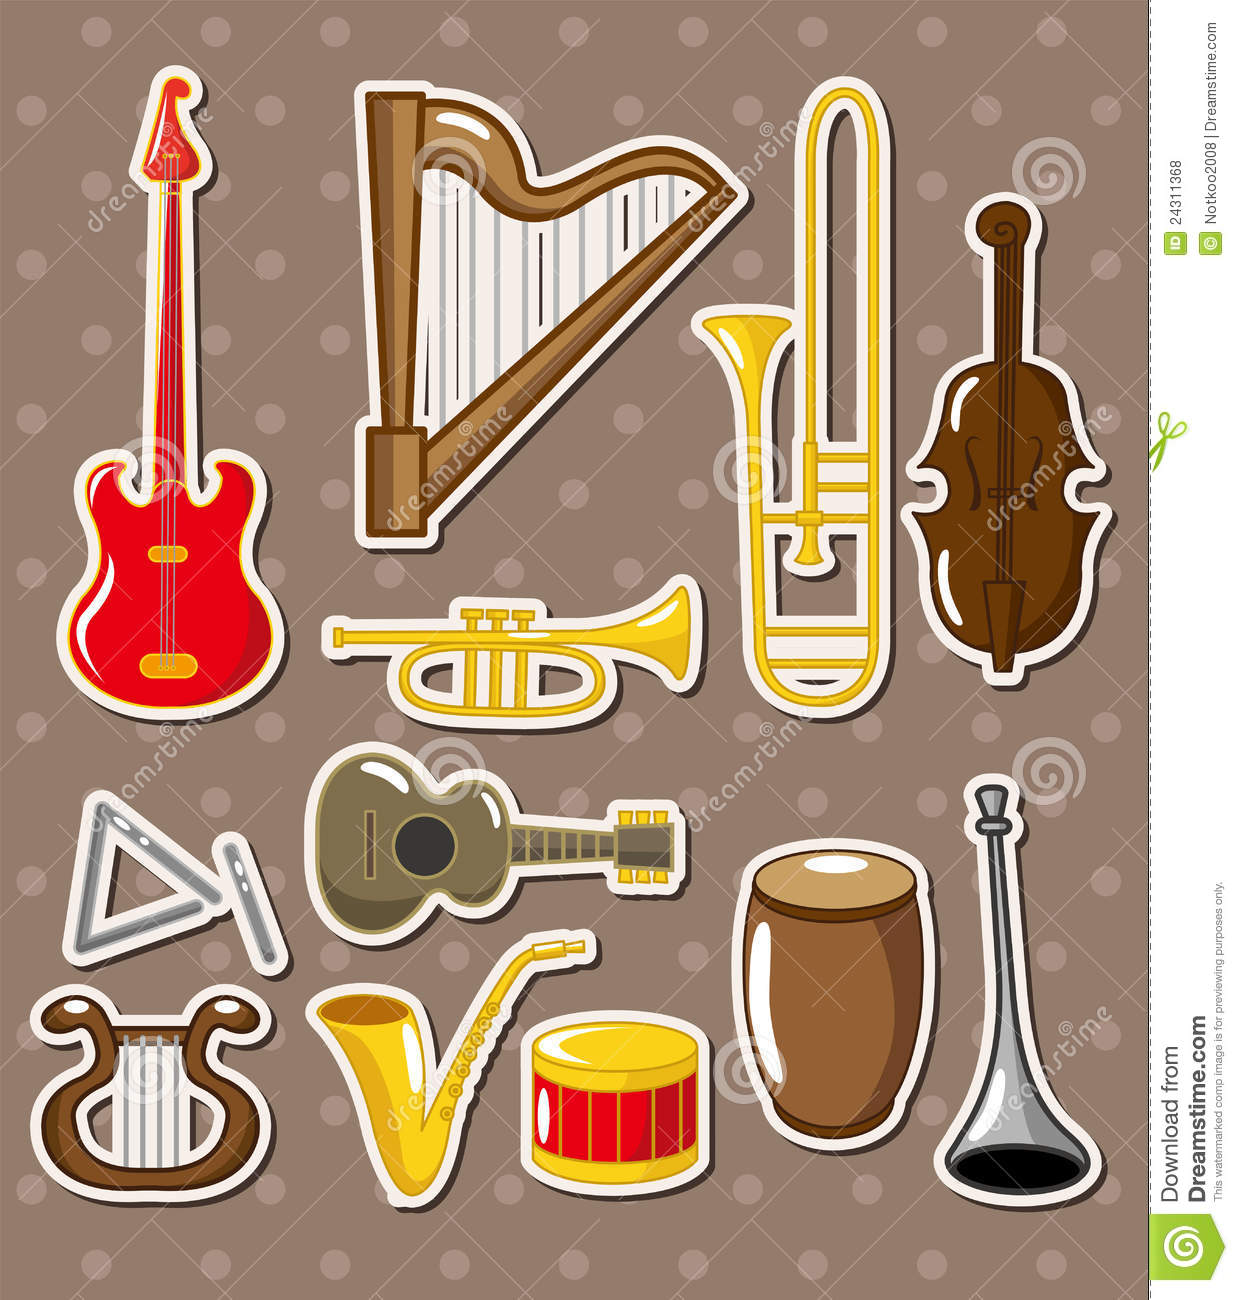 ... x3e musical \x3cb\x3einstruments\x3c/b\x3e stickers royalty free stock: galleryhip.com/cartoon-instruments.html